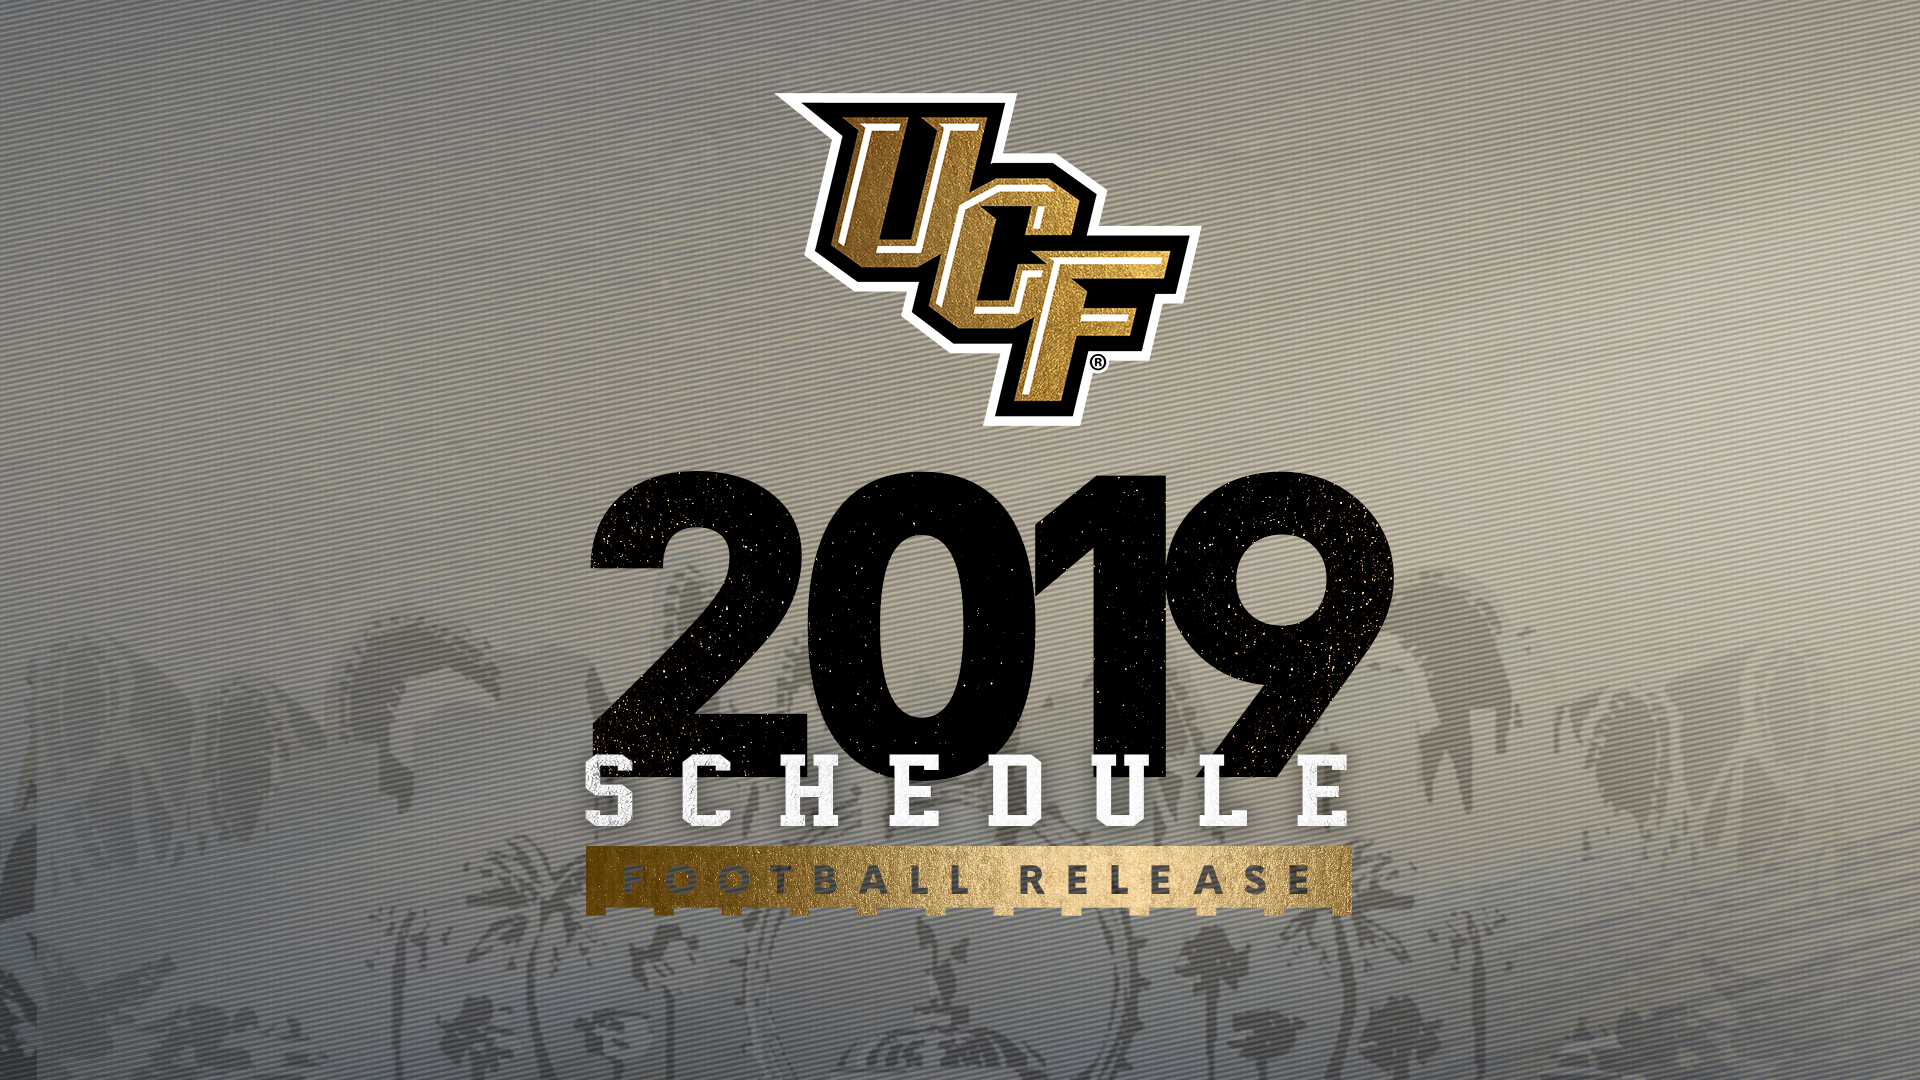 Ucf Football Schedule 2020.2019 Football Schedule Announced Ucf Athletics